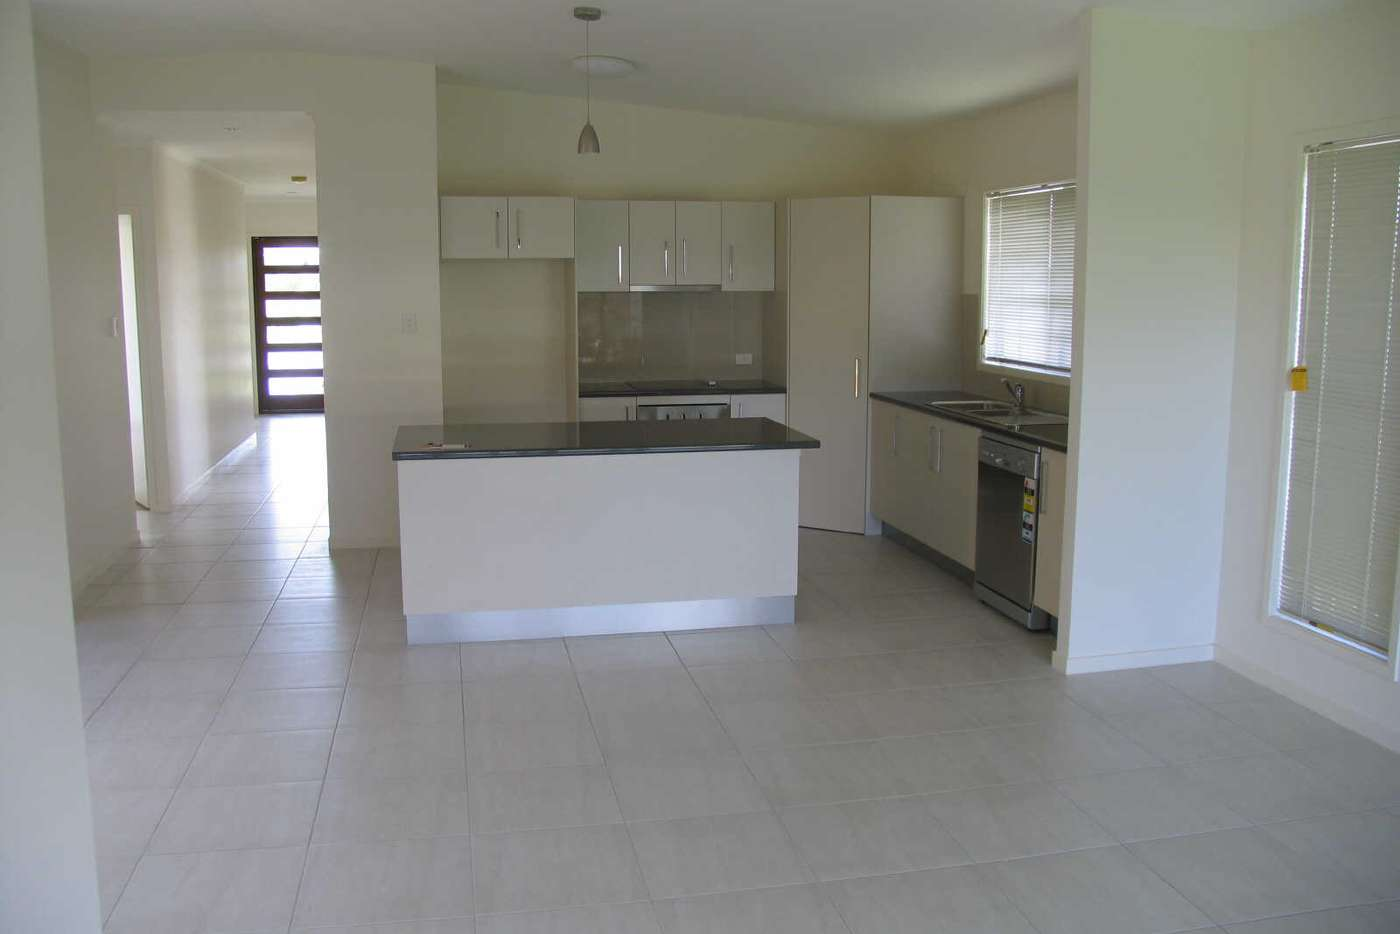 Sixth view of Homely house listing, 6 Joshua Close, Little Mountain QLD 4551